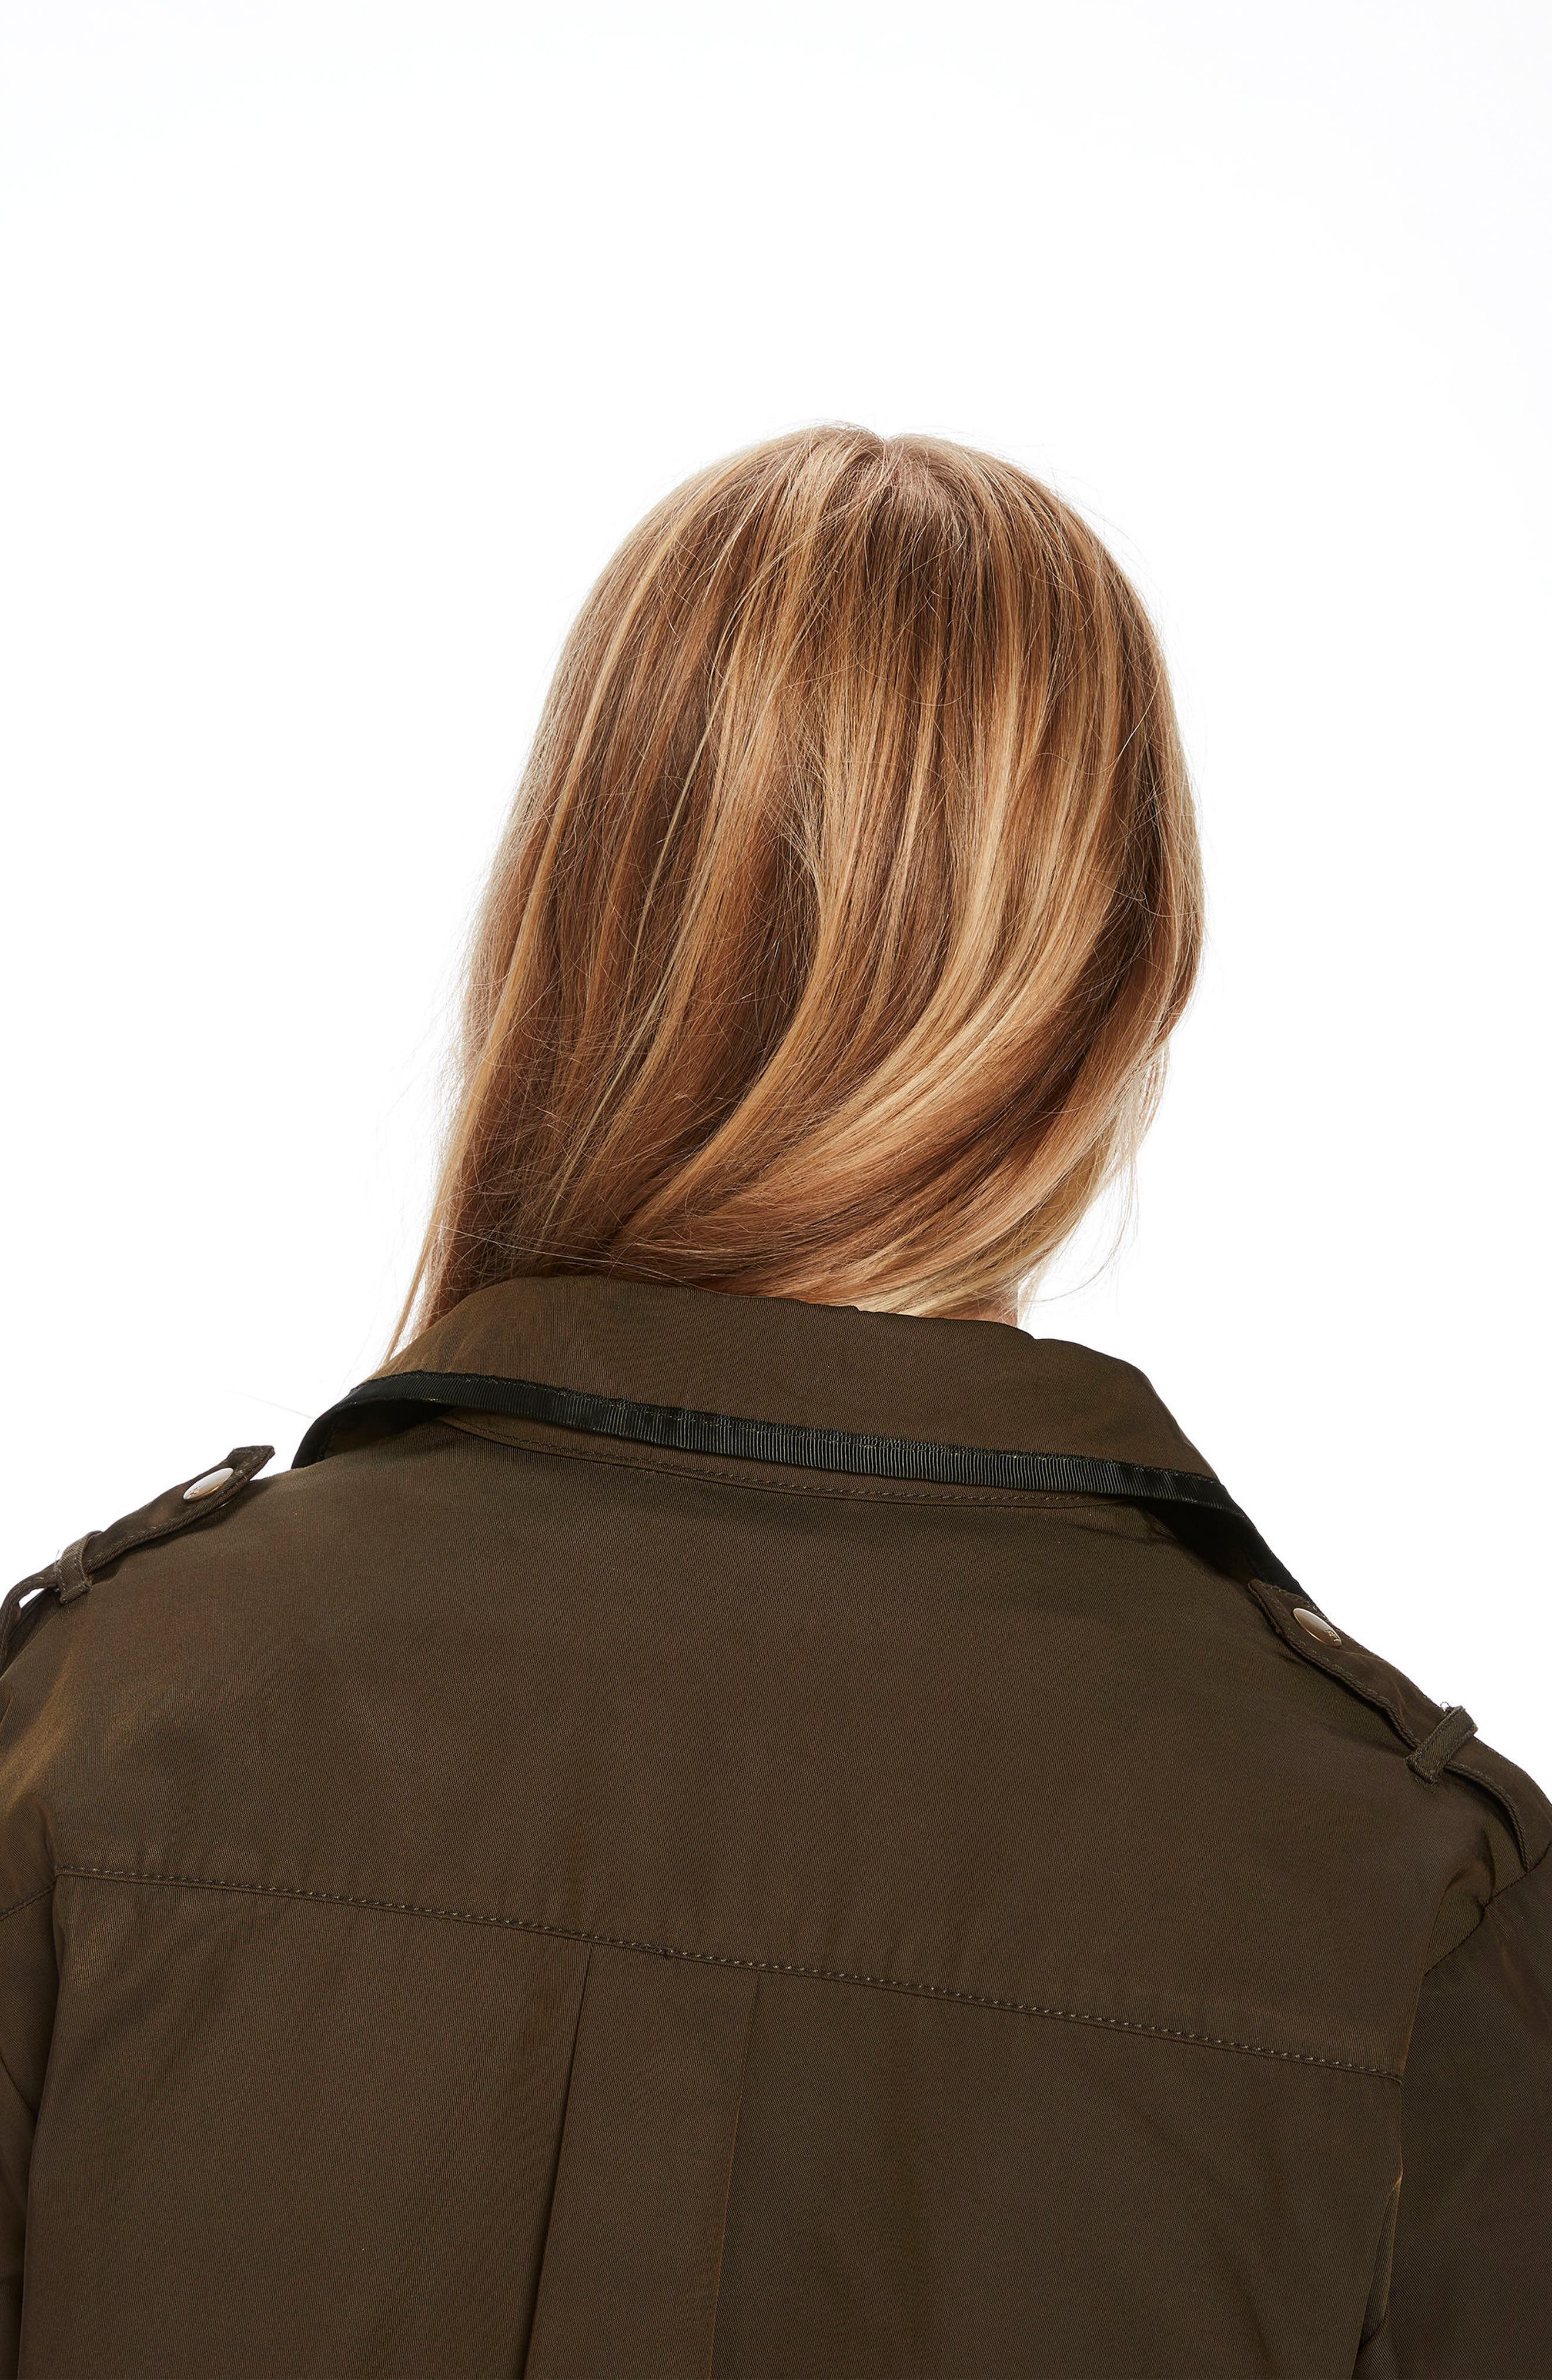 Boxy Double Breasted Jacket,                             Alternate thumbnail 3, color,                             301